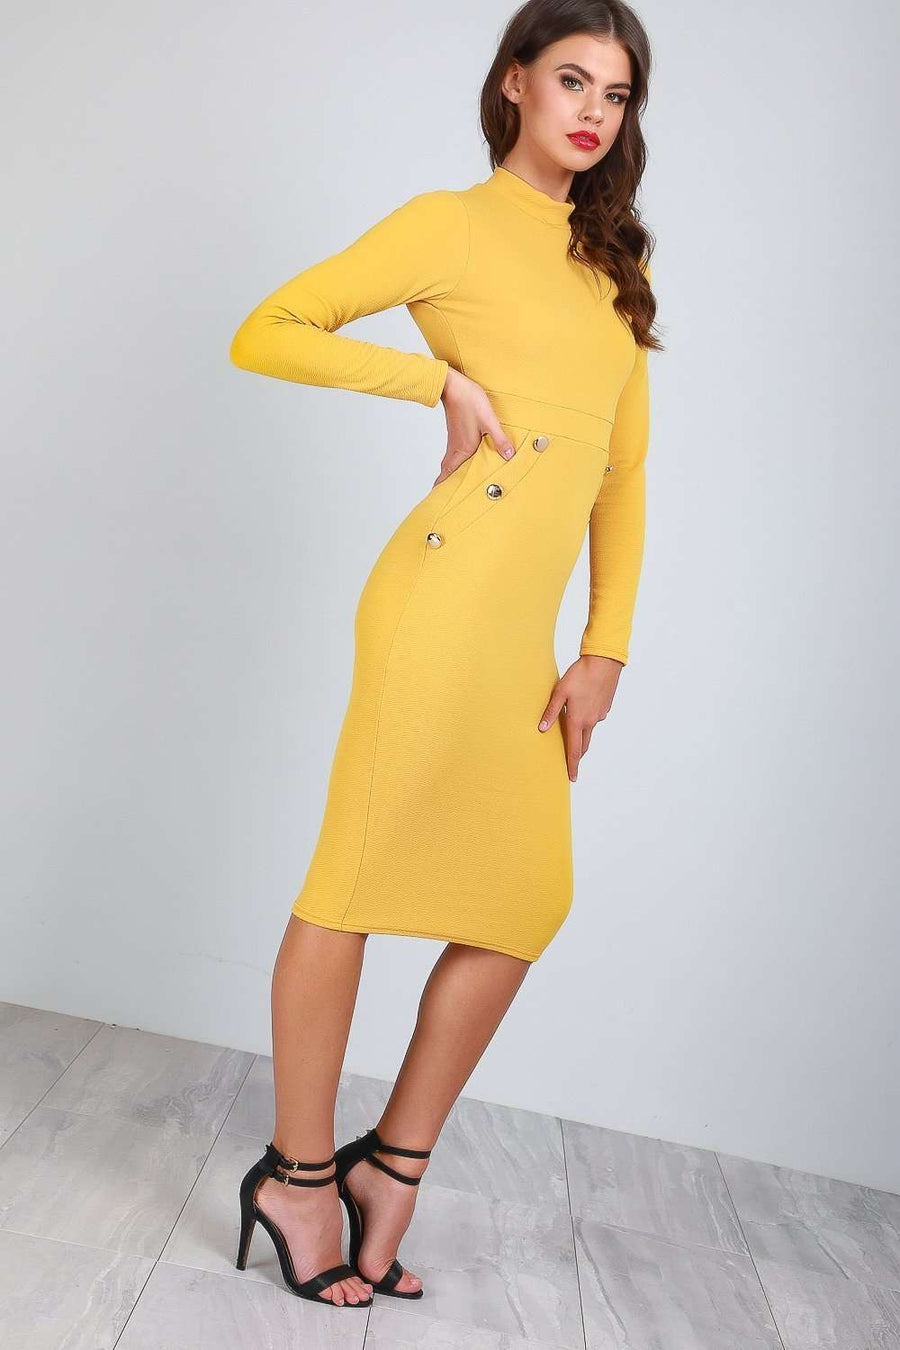 Sadie Long Sleeve Gold Button Bodycon Dress - bejealous-com